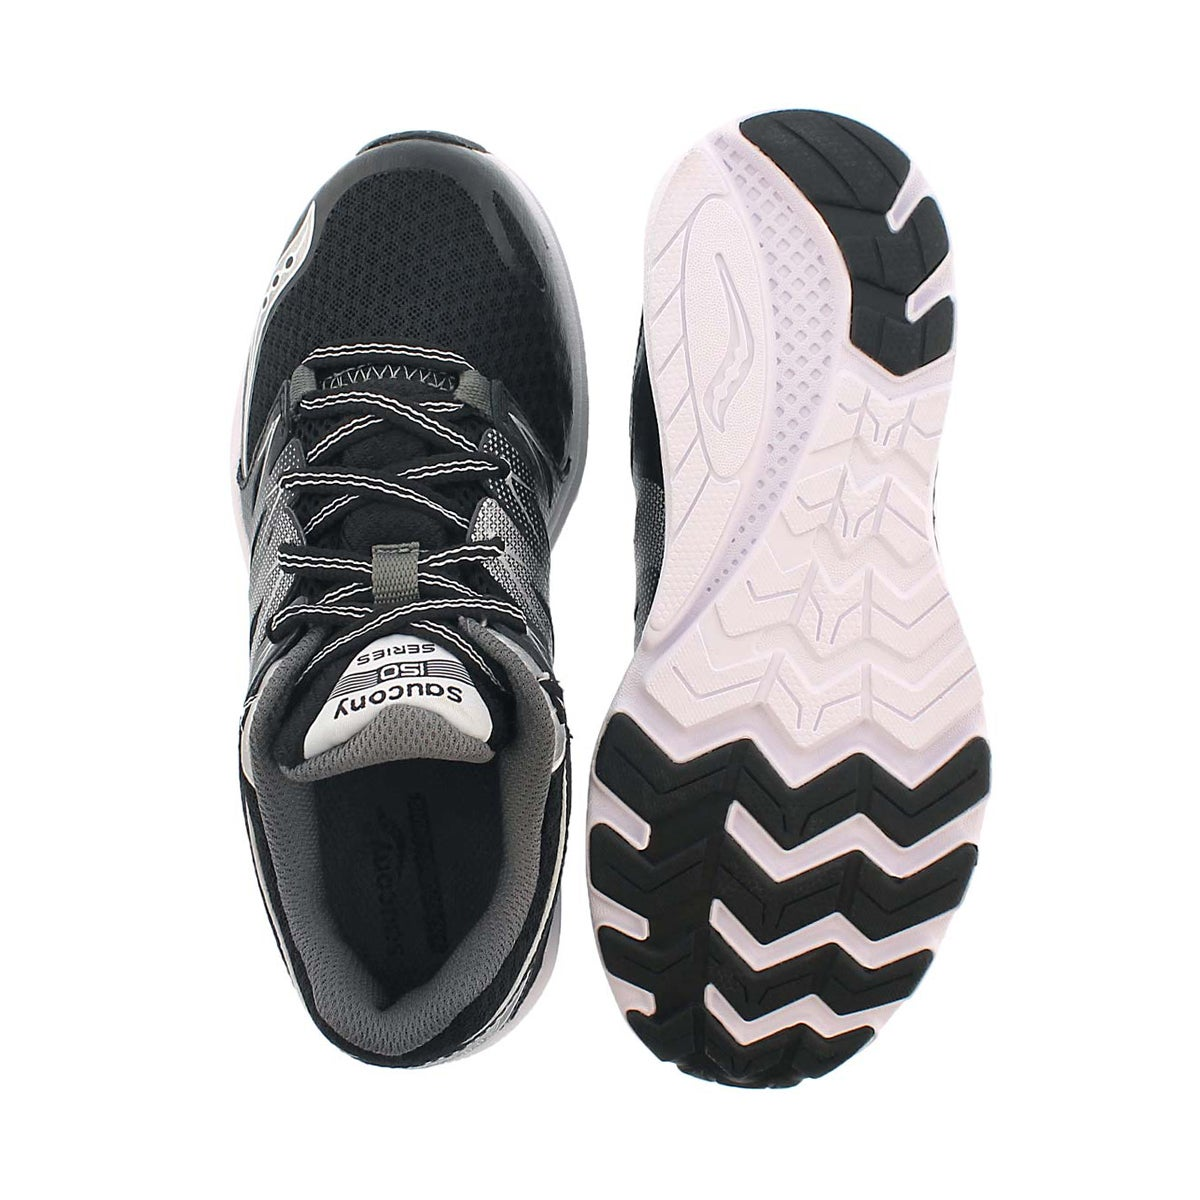 Bys Zealot 2 blk lace up running shoe